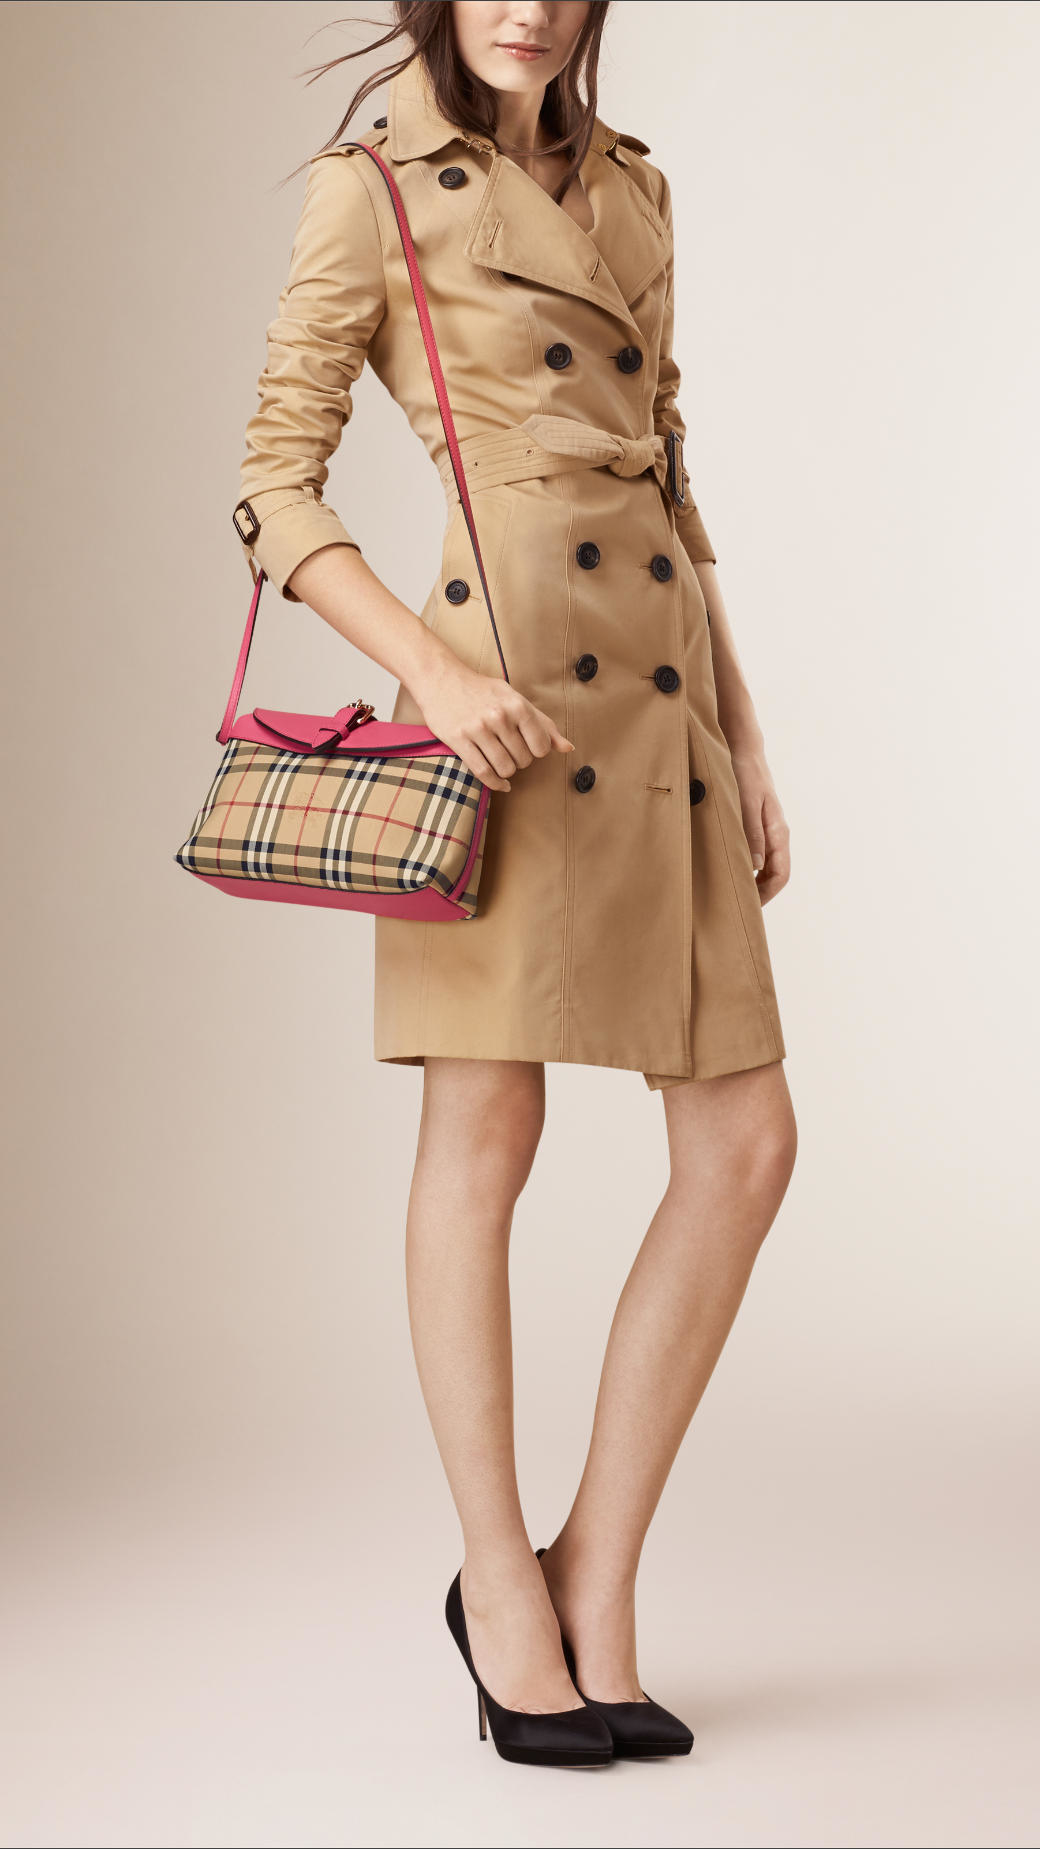 4f32e1bca161 Lyst - Burberry Small Horseferry-Check Clutch Bag in Natural